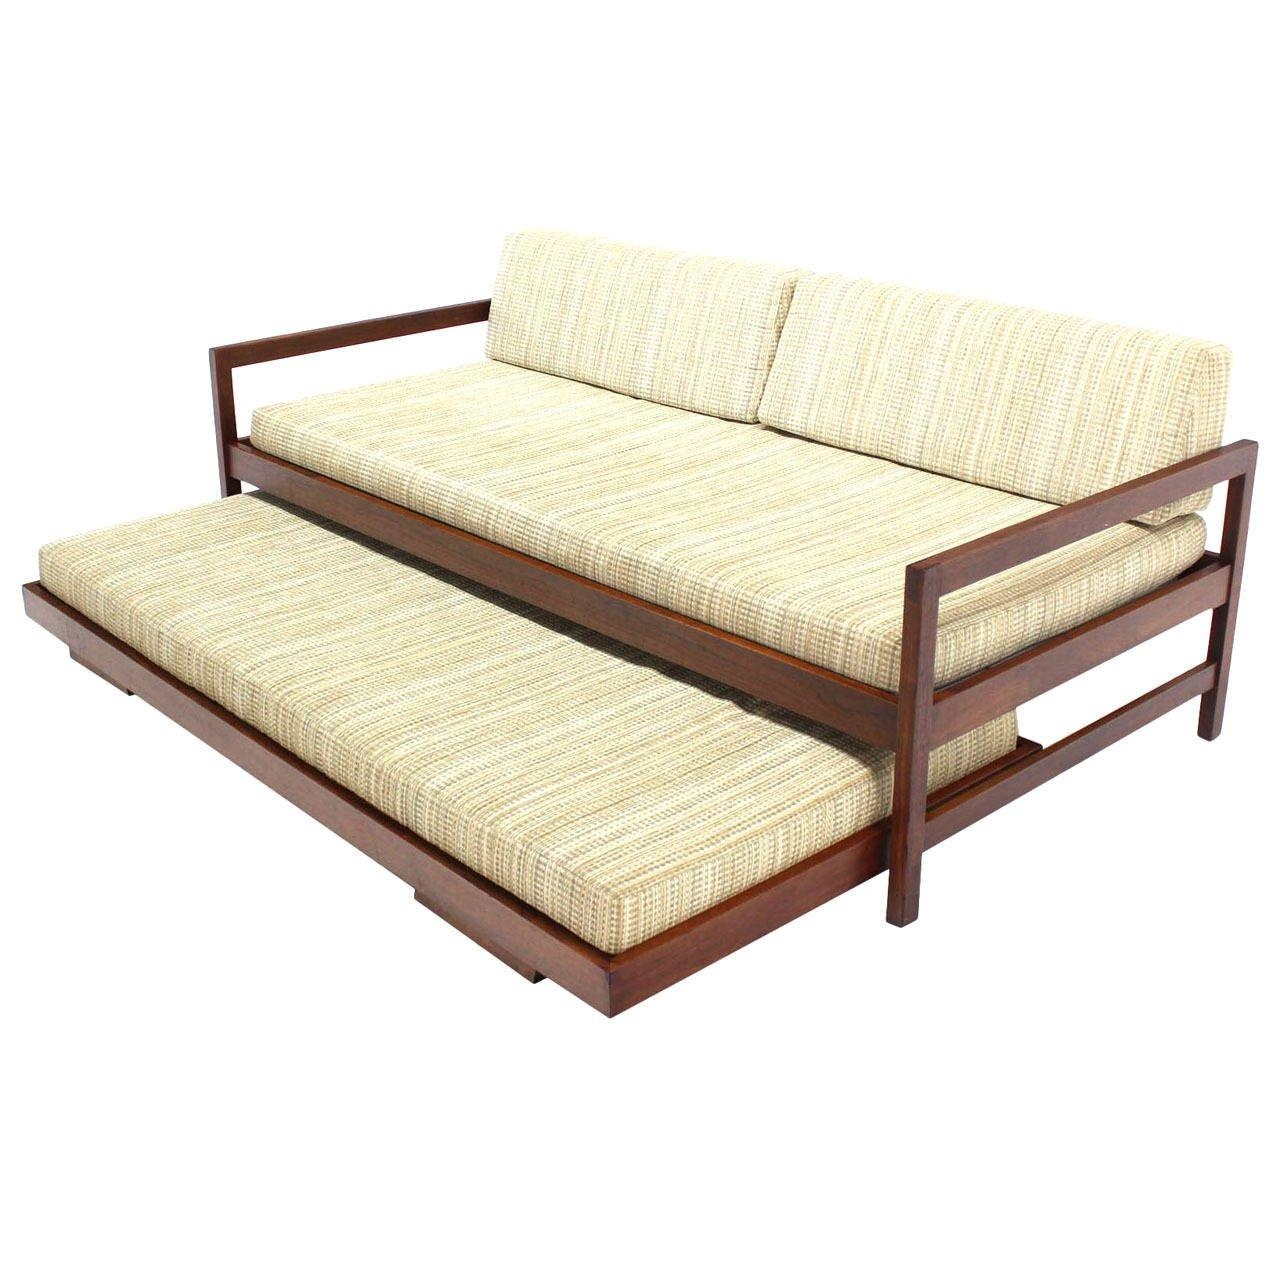 Solid Walnut Frame Mid Century Modern Trundle, Pull Out Daybed At With Regard To Sofas With Trundle (View 15 of 20)